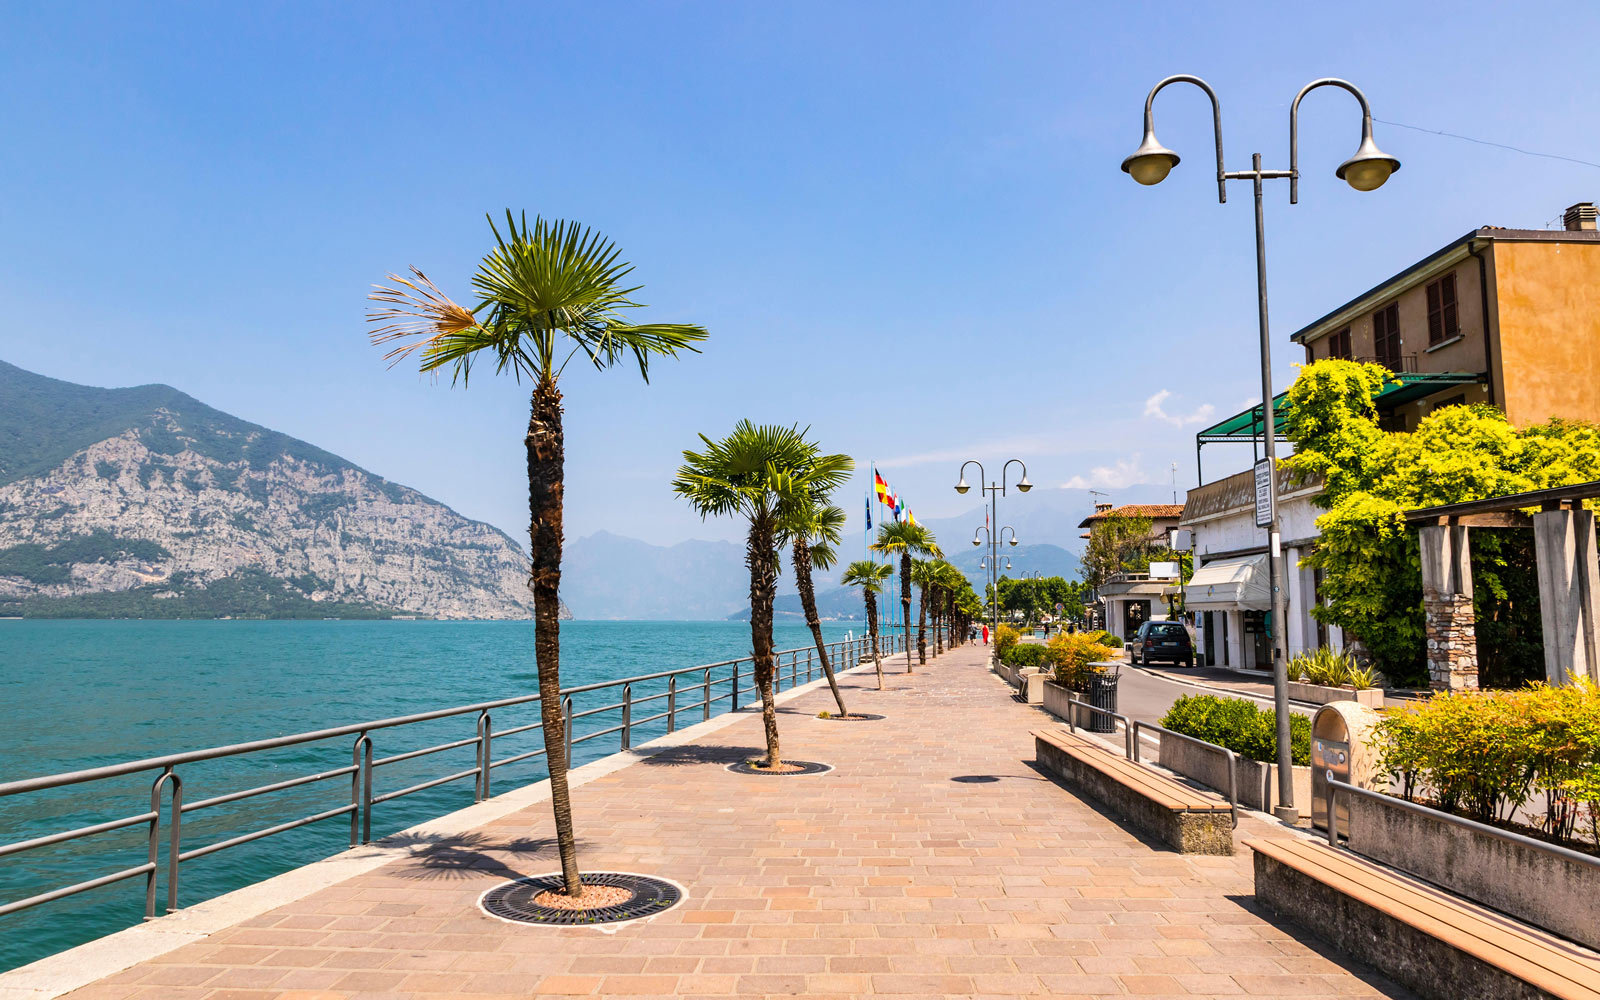 Lake Iseo boardwalk